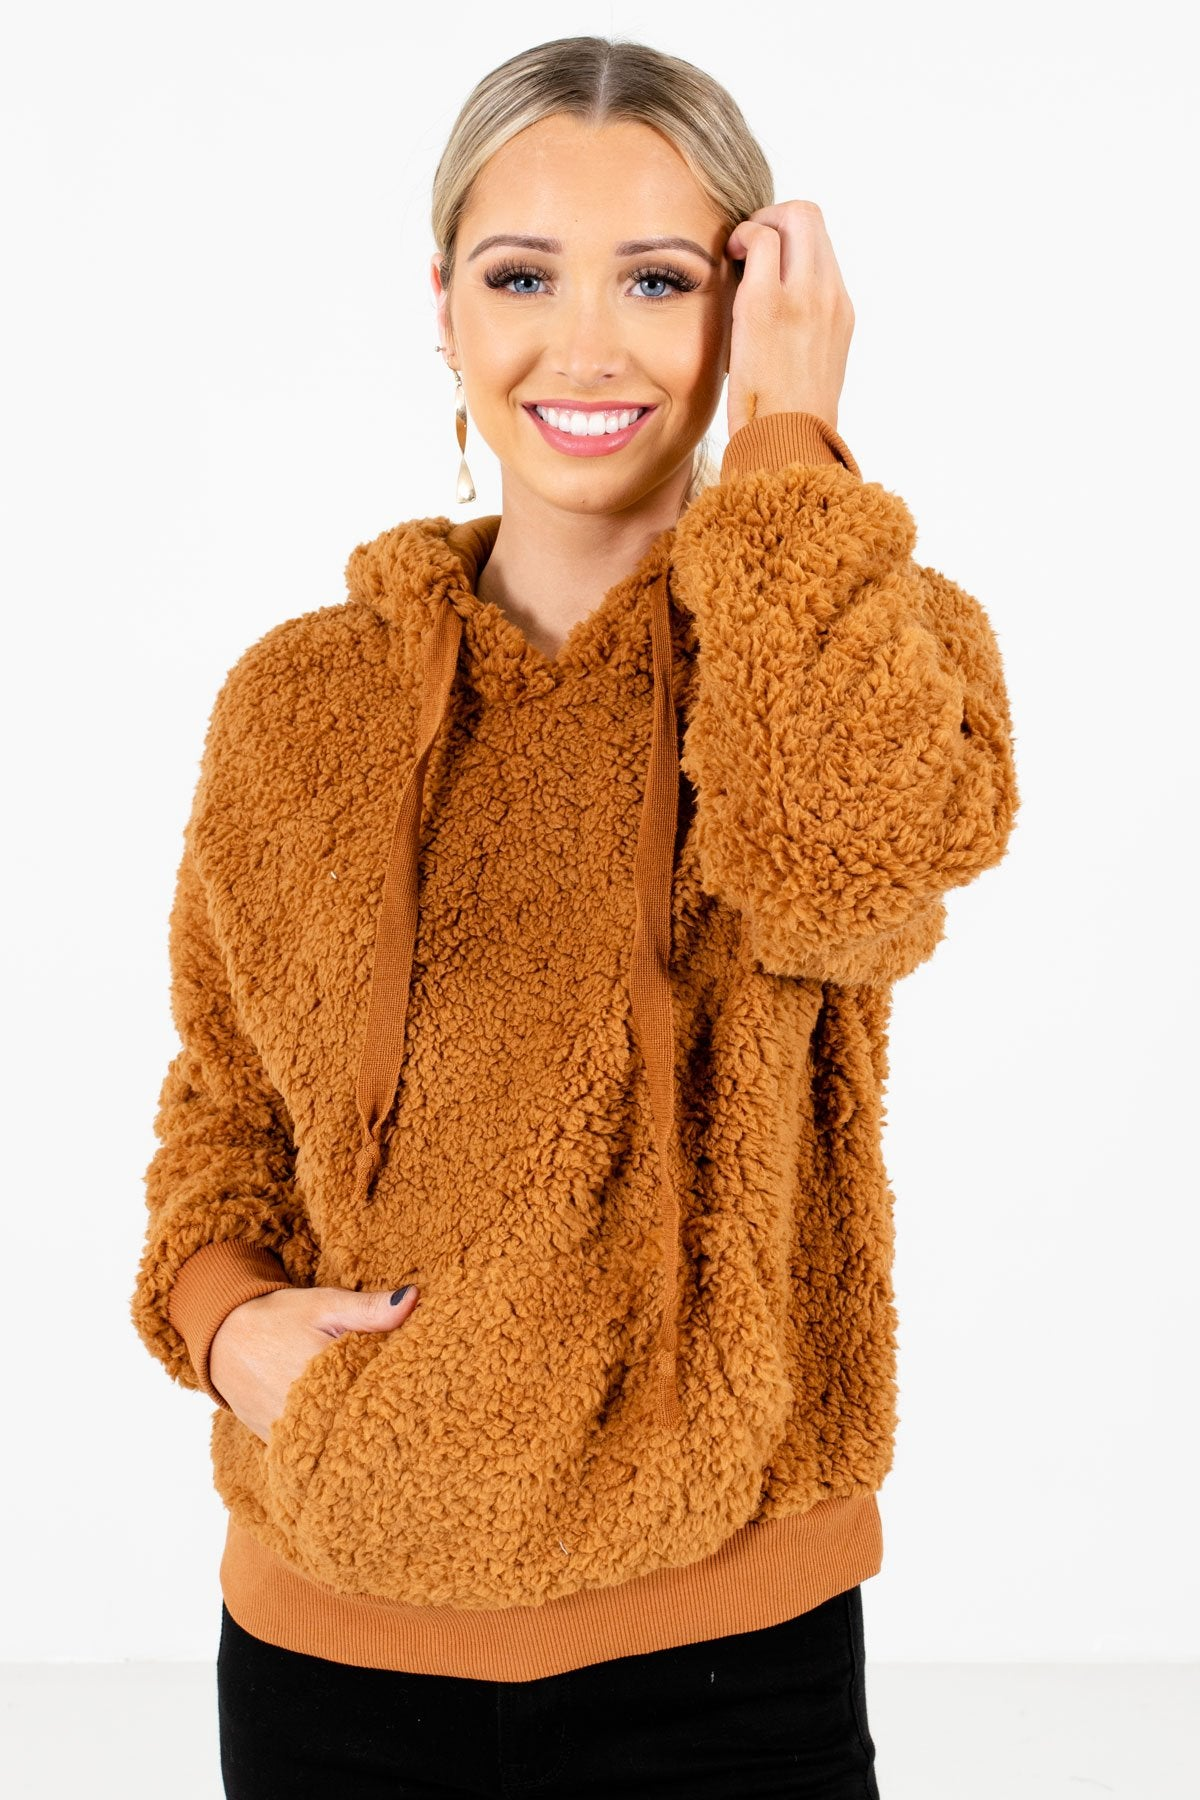 Tawny Orange High-Quality Faux Sherpa Material Boutique Hoodies for Women